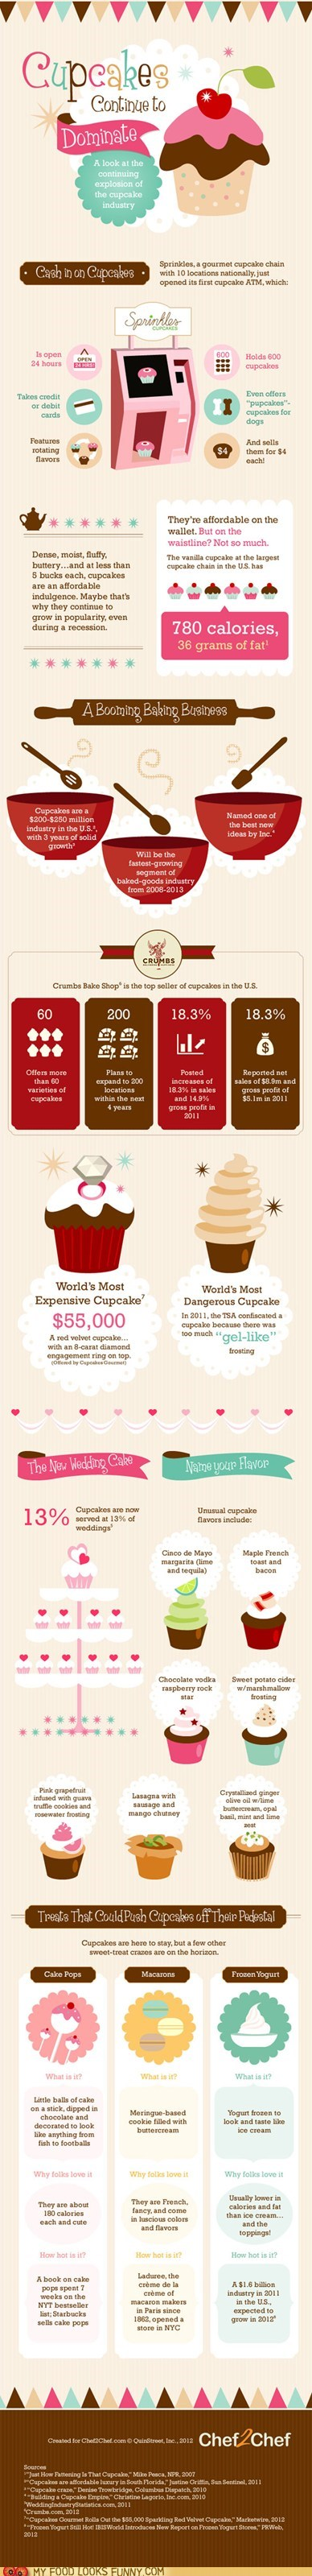 cupcakes info infographic trends - 6013801984